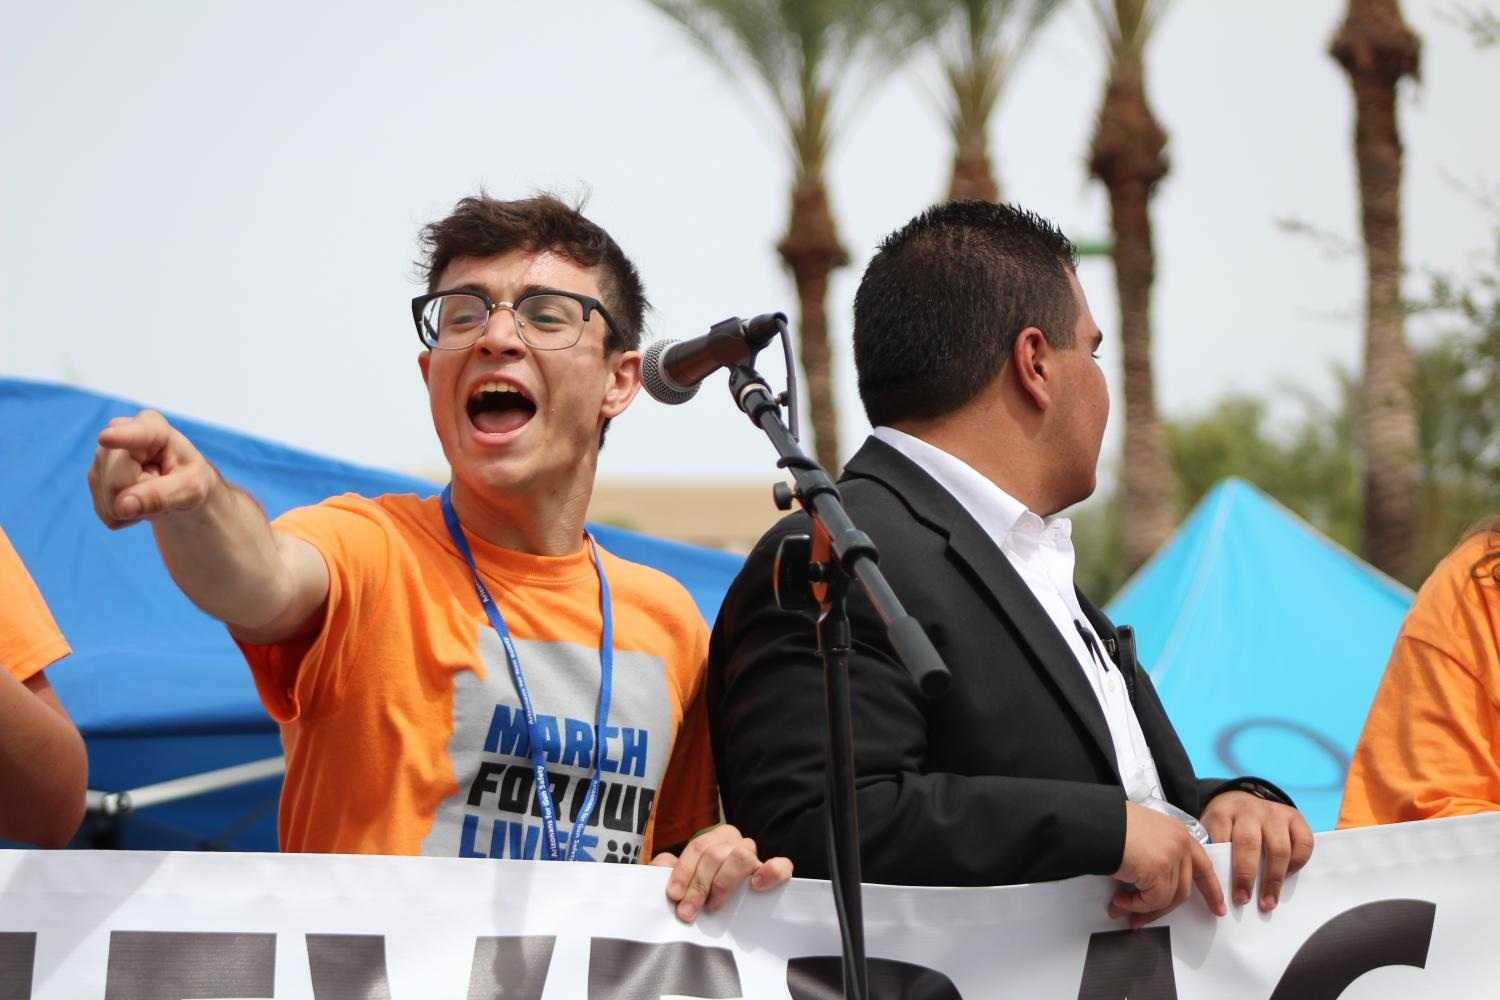 JORDAN HARB - March For Our Lives - ArizonaMountain View High School